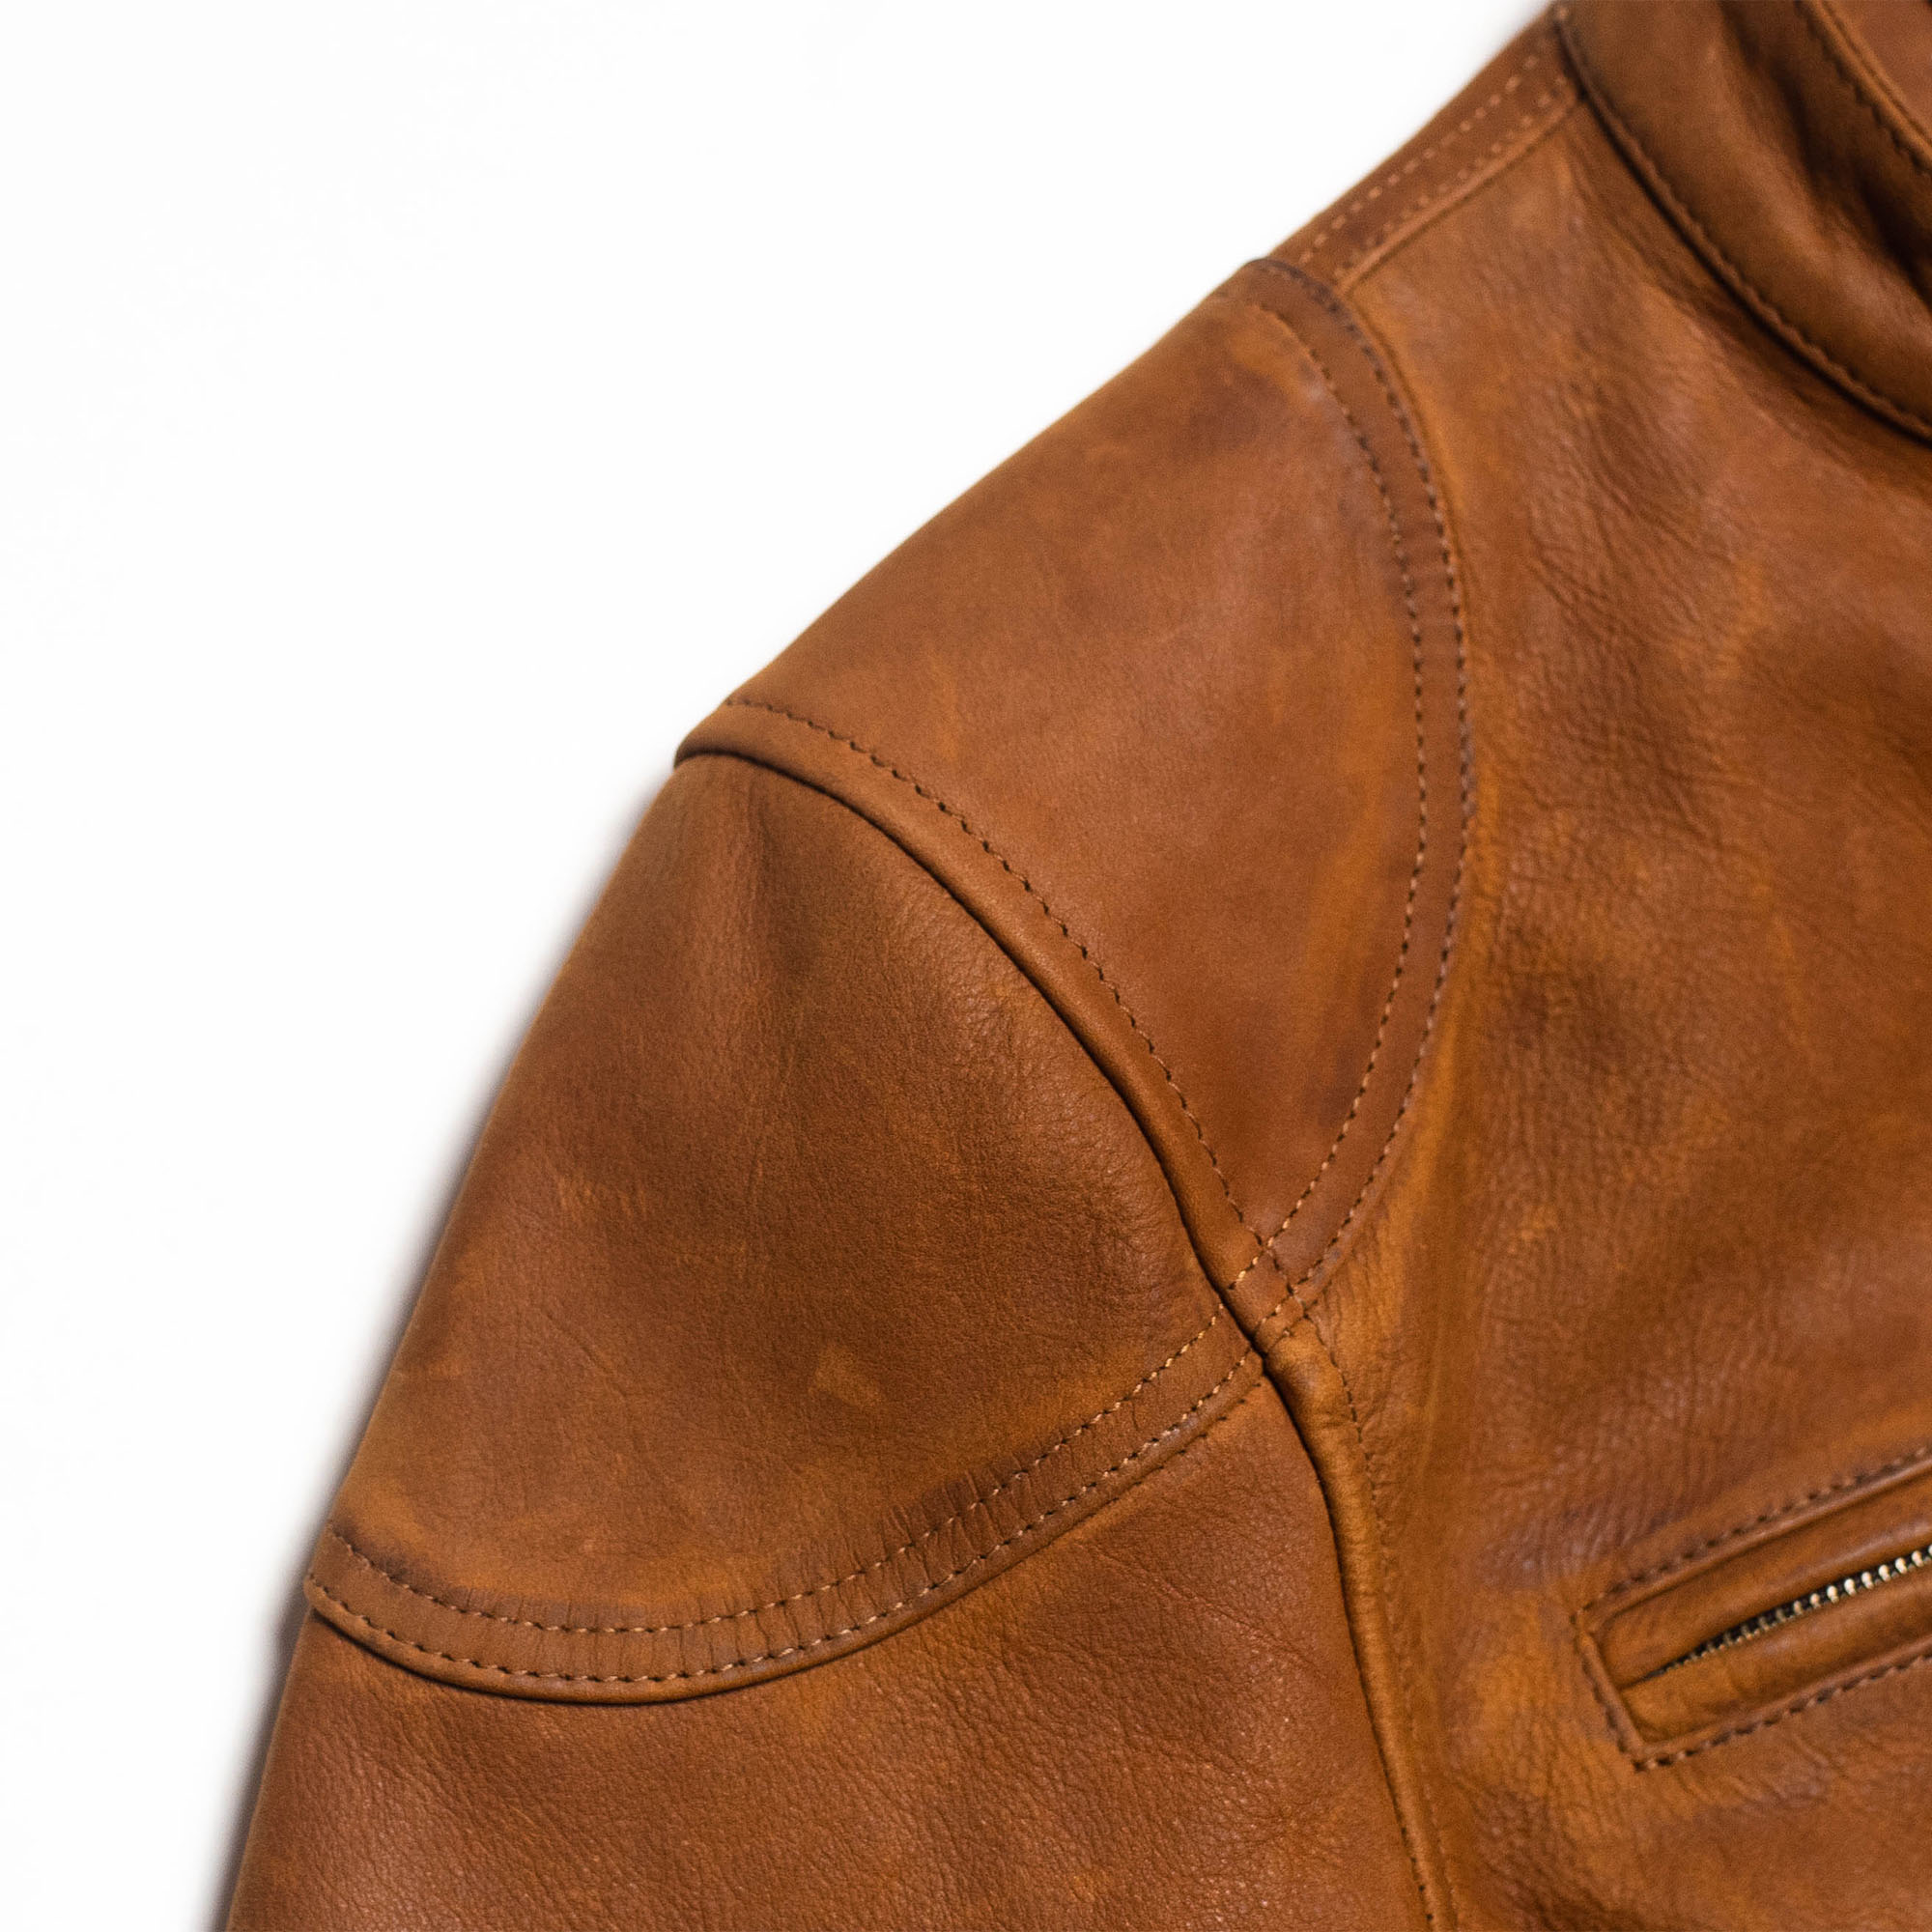 shangri-la-heritage-cafe-racer-nubuck-leather-jacket-still-life-shoulder